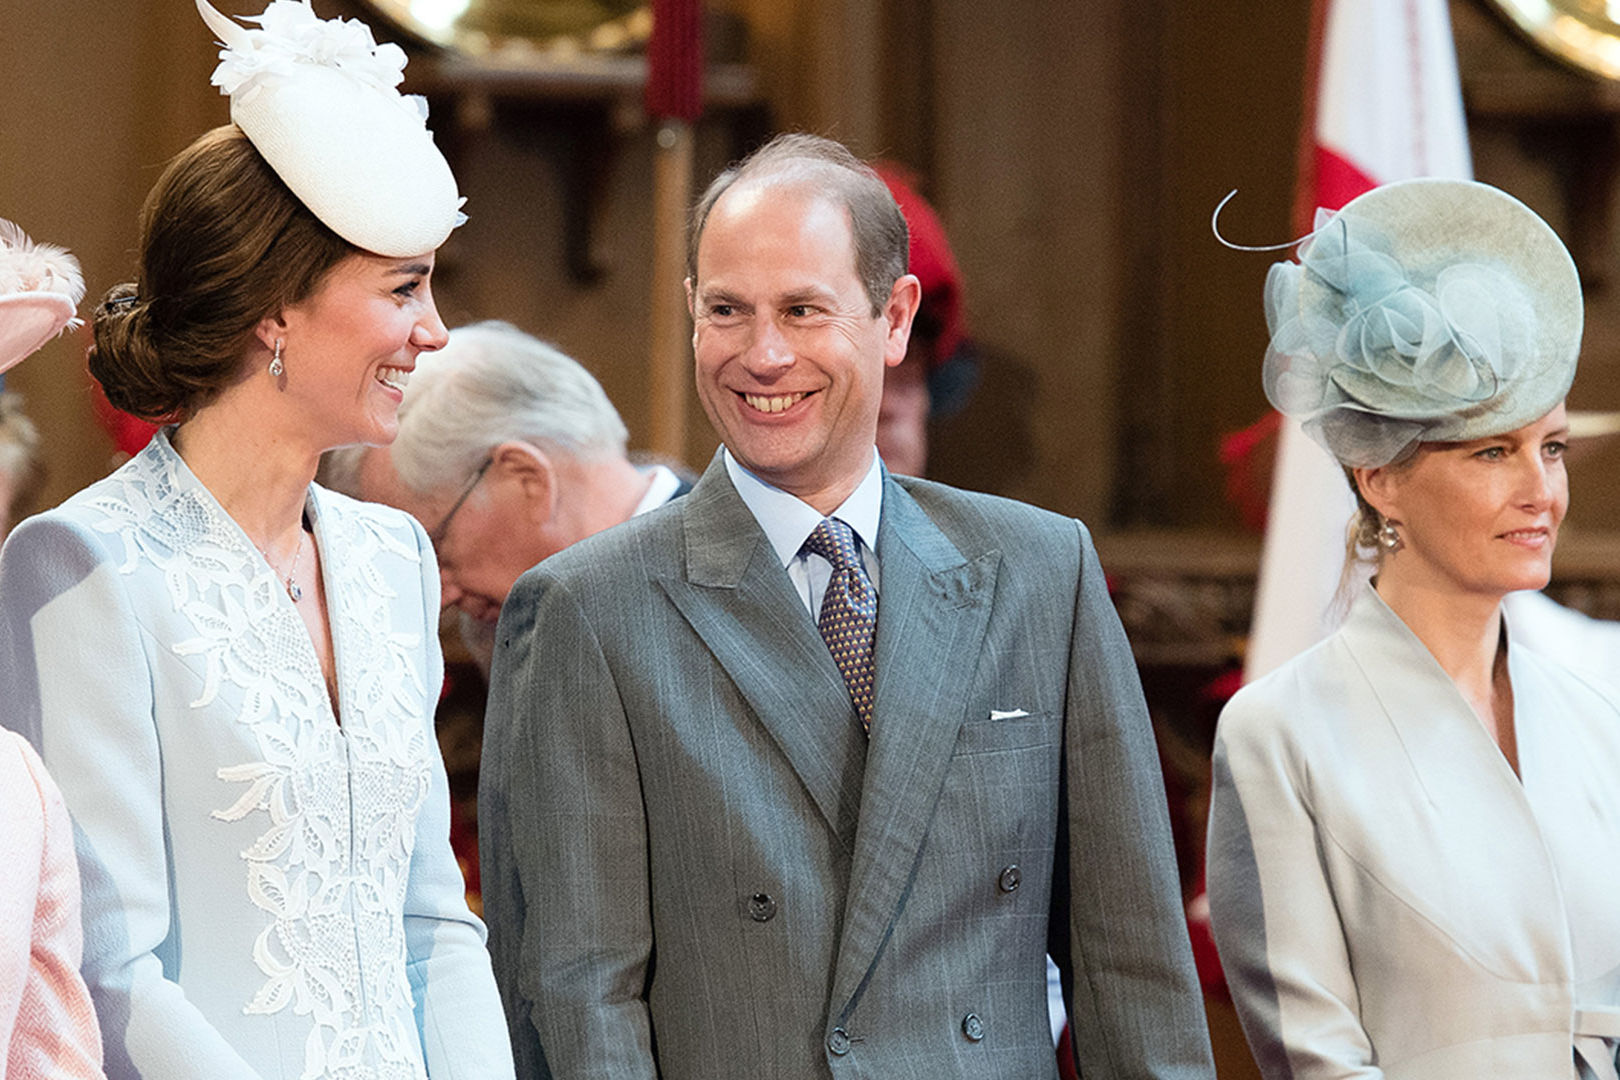 Britain's Prince Edward Is Visiting Aiken, South Carolina, Later This Month